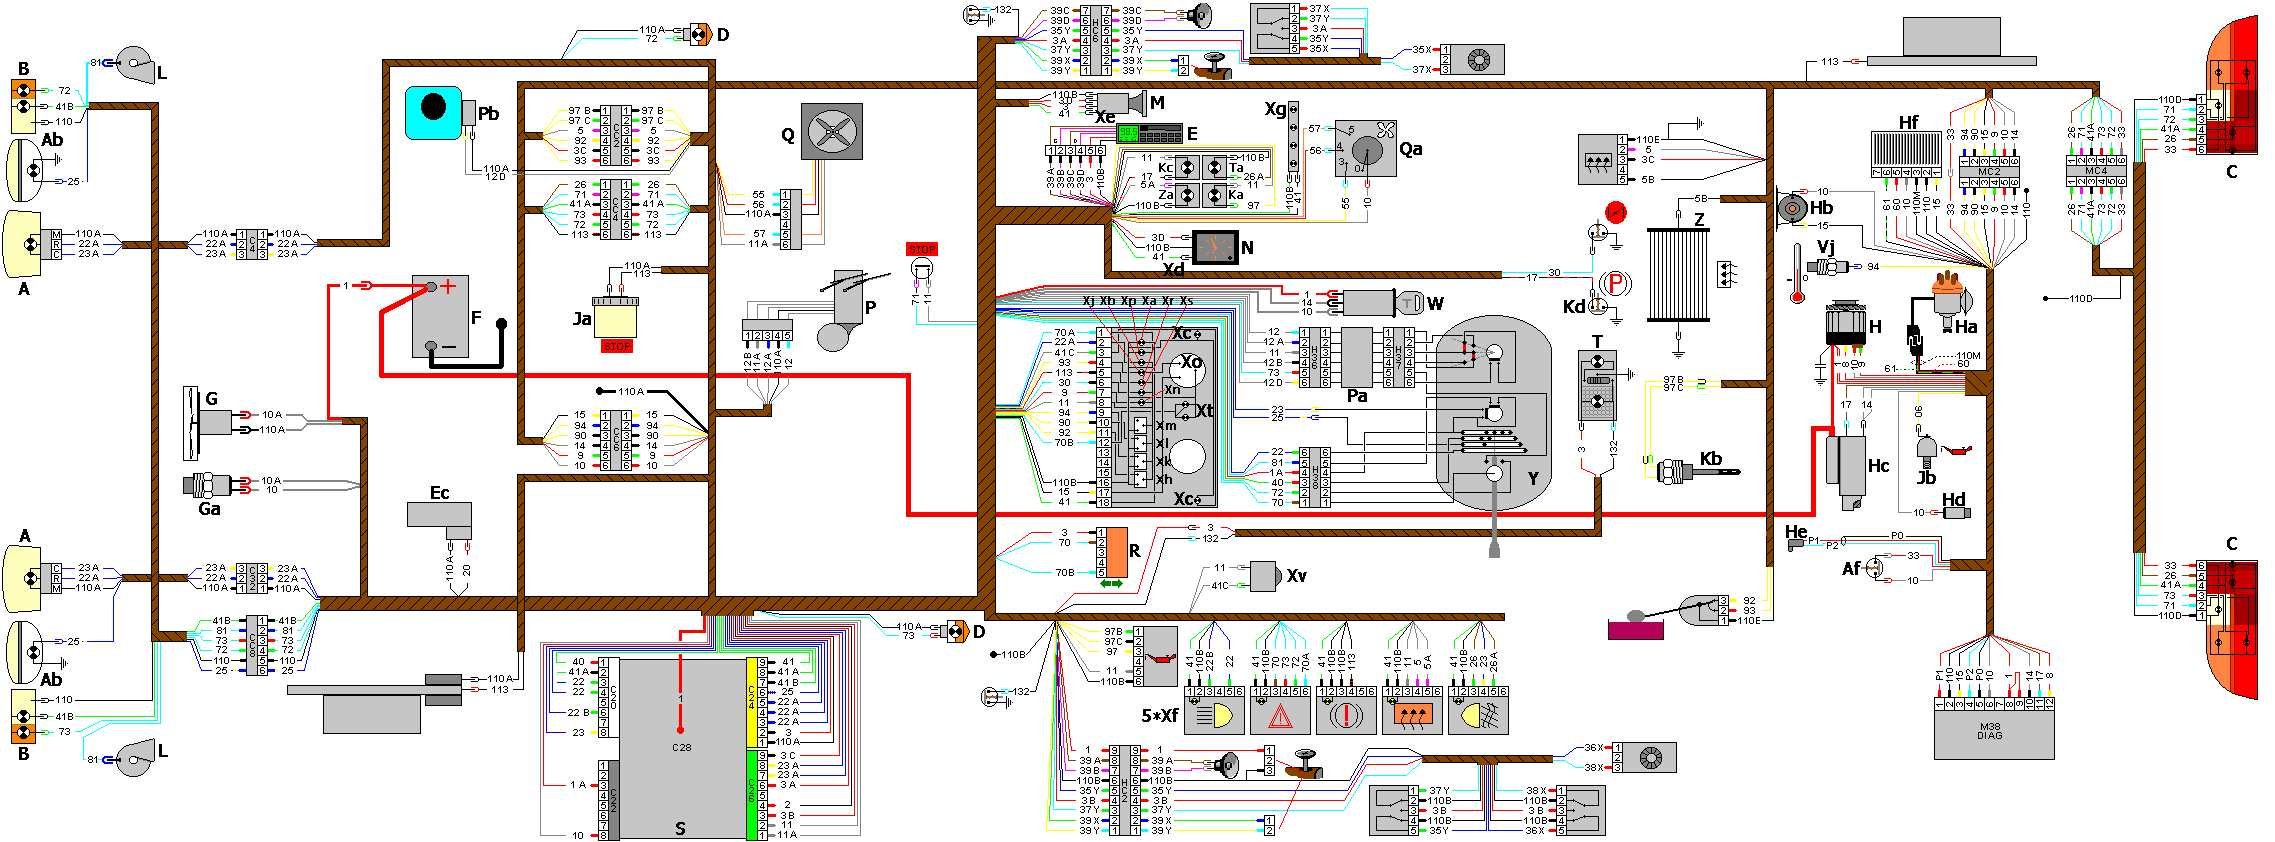 Peugeot 607 Wiring Pdf Real Diagram 307 Fuse Box 406 Diagrams Schematics 807 Free Download